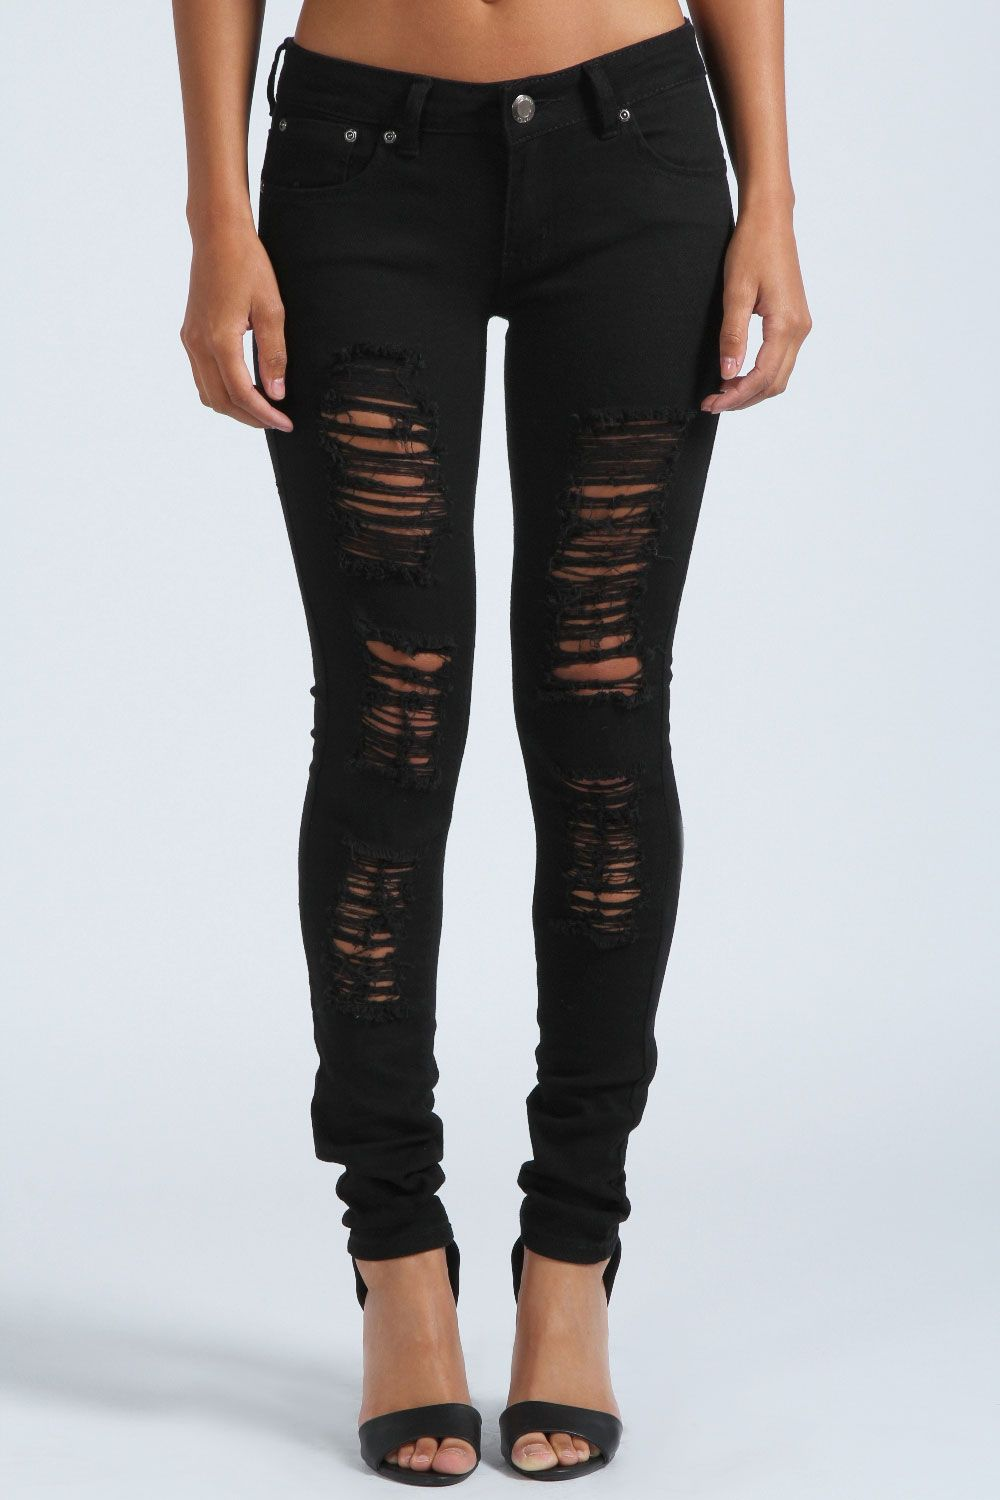 33d3802147 Chloe Ripped Skinny Jeans at boohoo.com